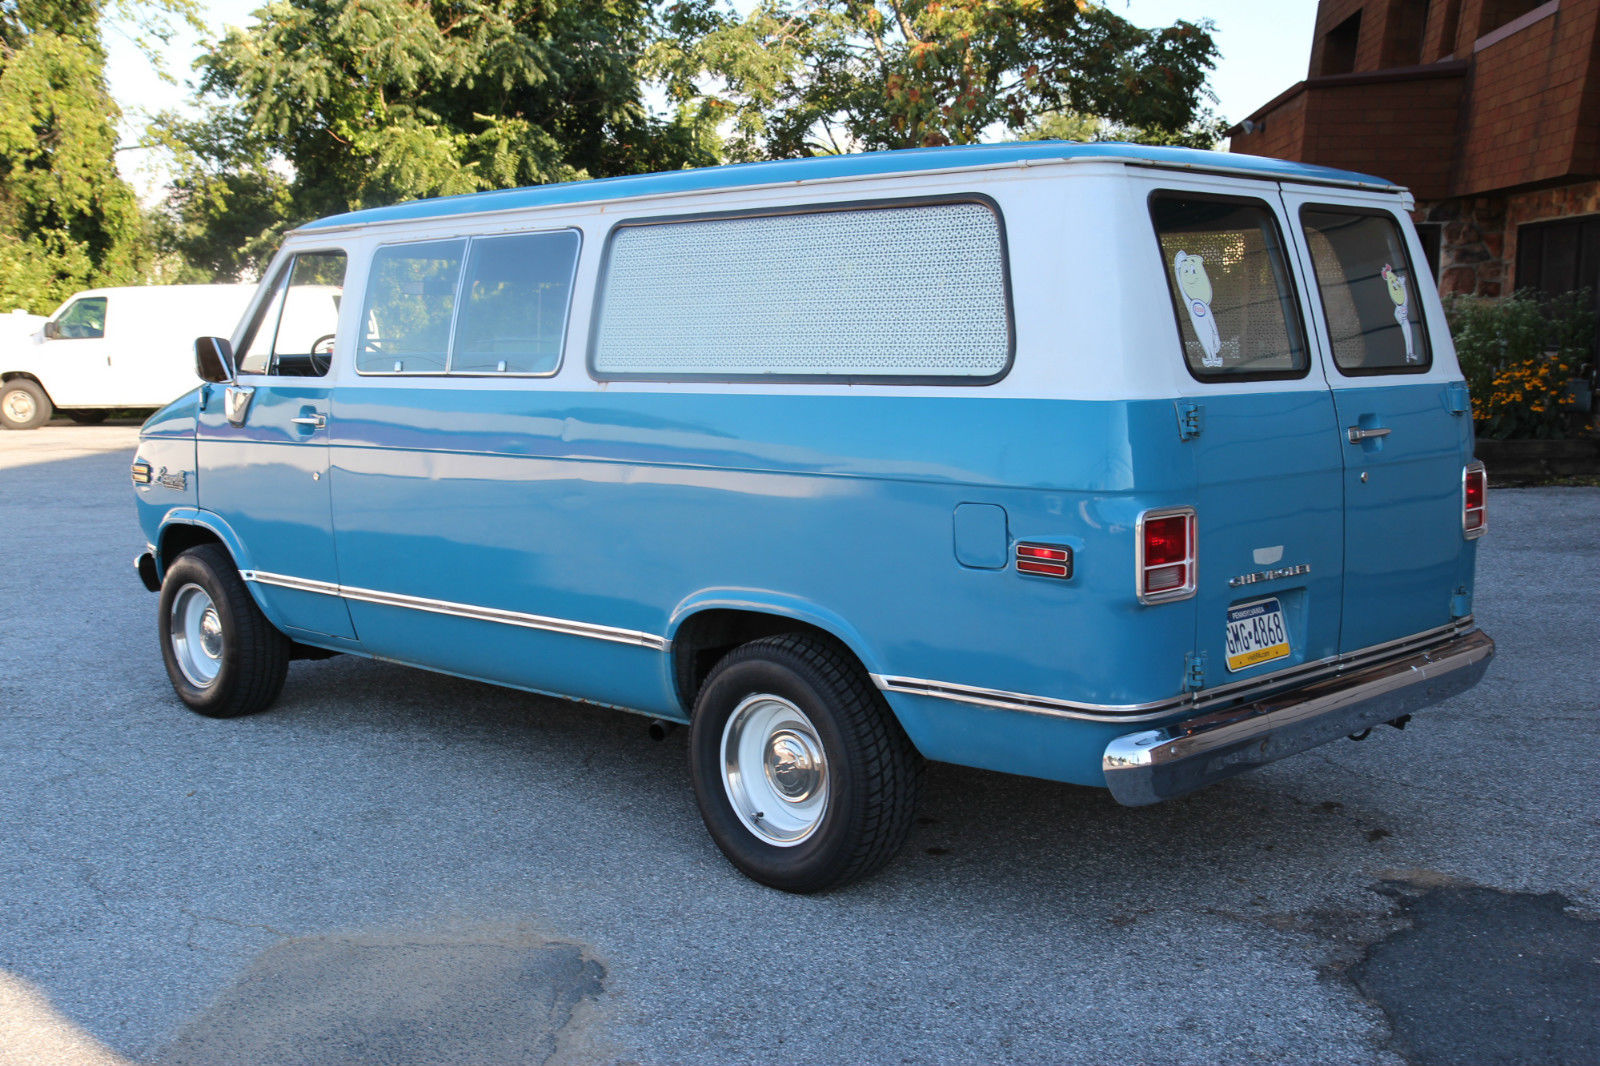 1972 chevy beauville van. Black Bedroom Furniture Sets. Home Design Ideas